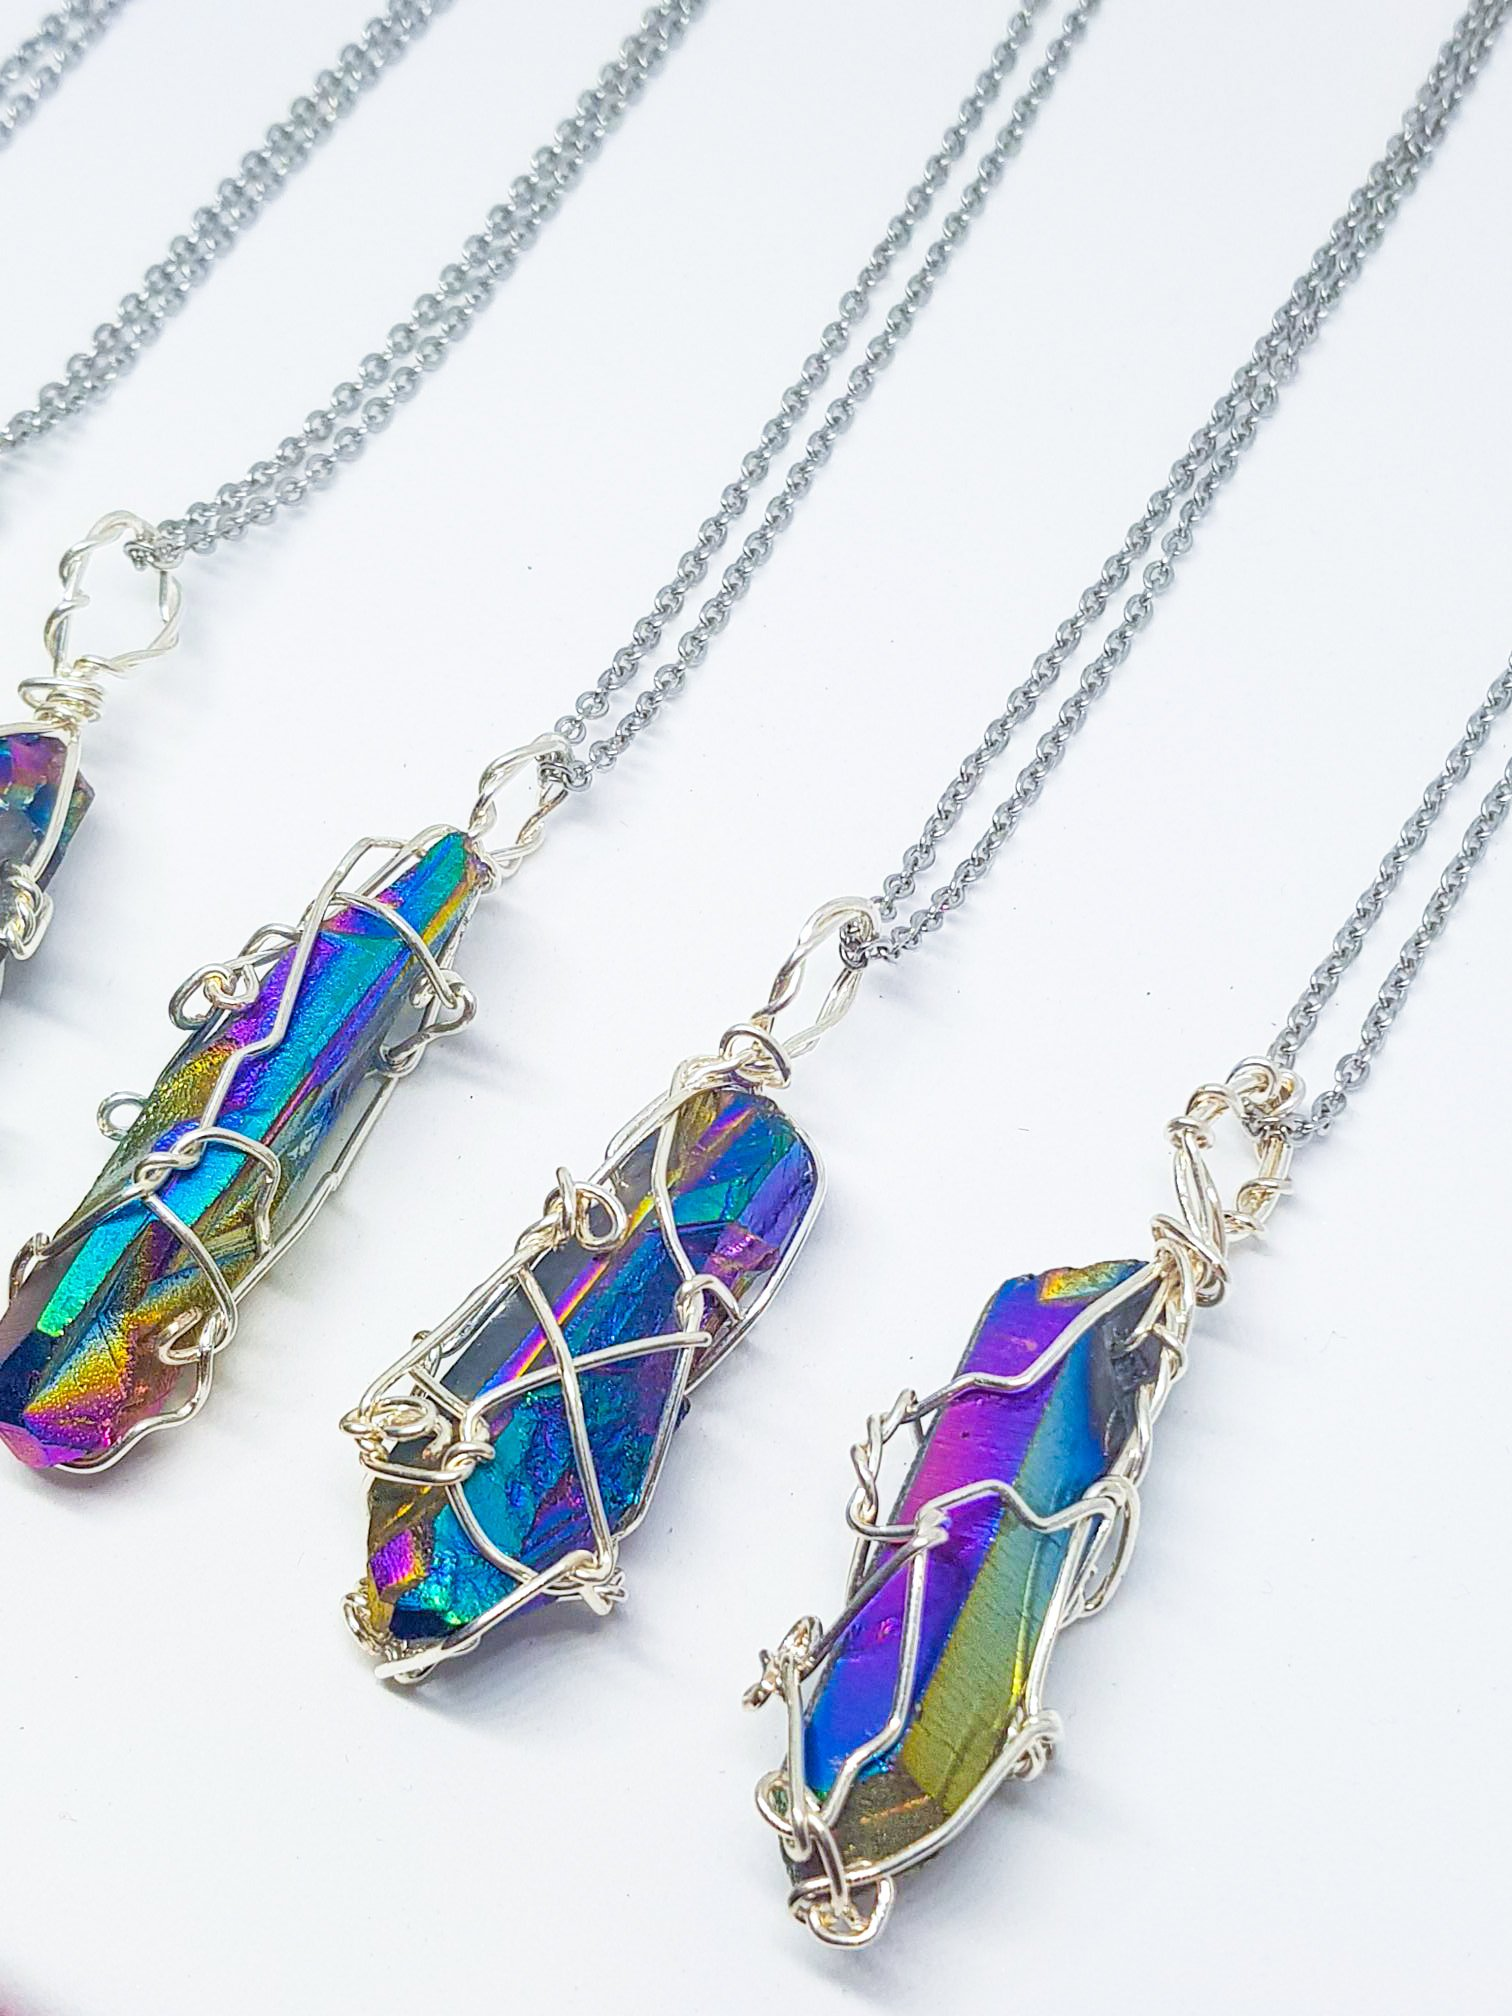 Rough Rainbow Titanium Quartz Point Necklace - Silver Wire Wrapped - Rainbow Aura - 925 Silver Snake or Curb Chain - Gift ideas for women